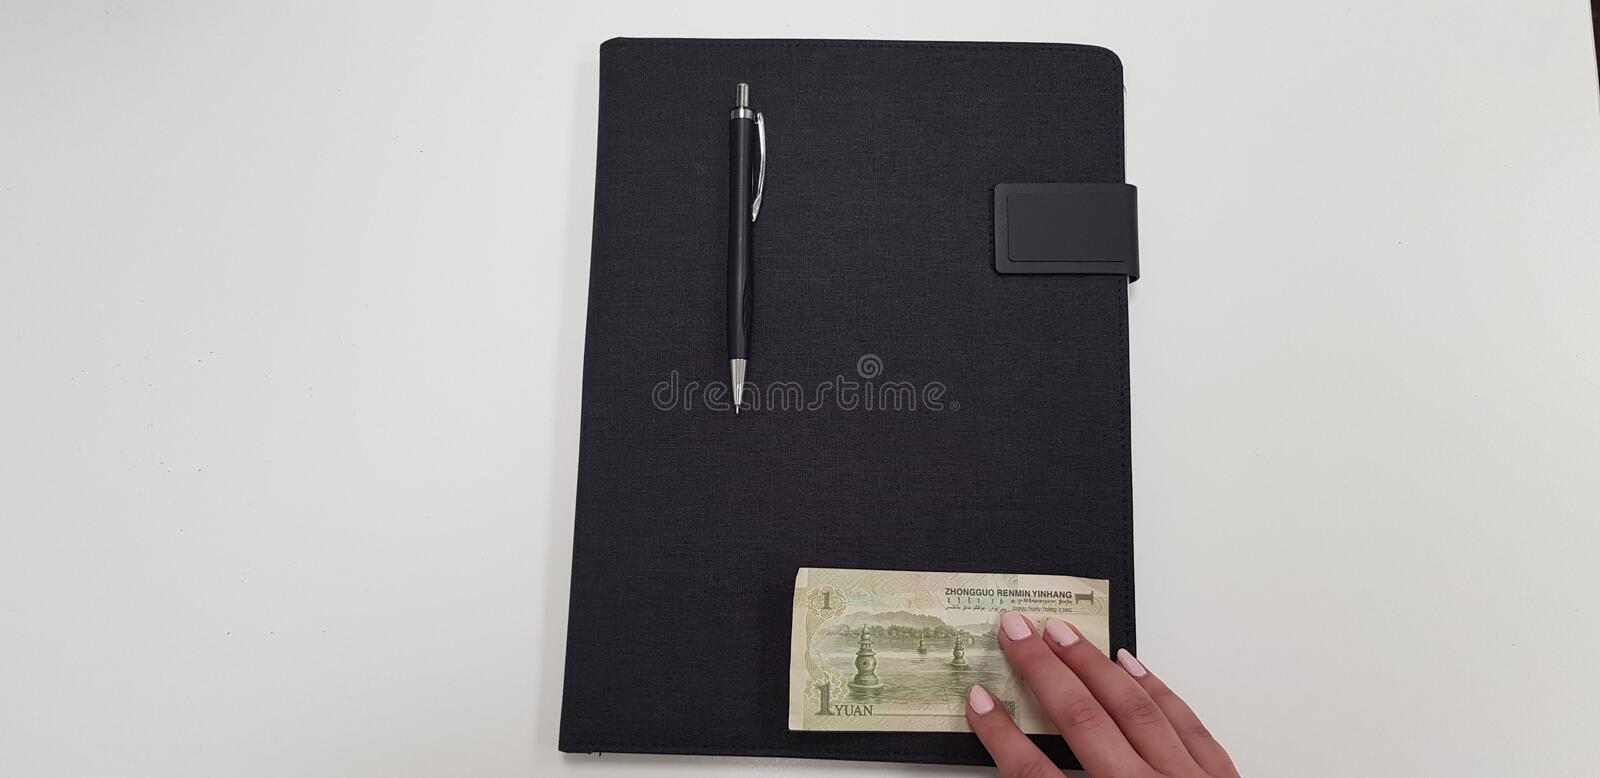 Woman holds fingers on one yuan banknote. Woman holds fingers on one yinhang banknote on black folder with pen on it bookmaker brokerage budget business china stock photography